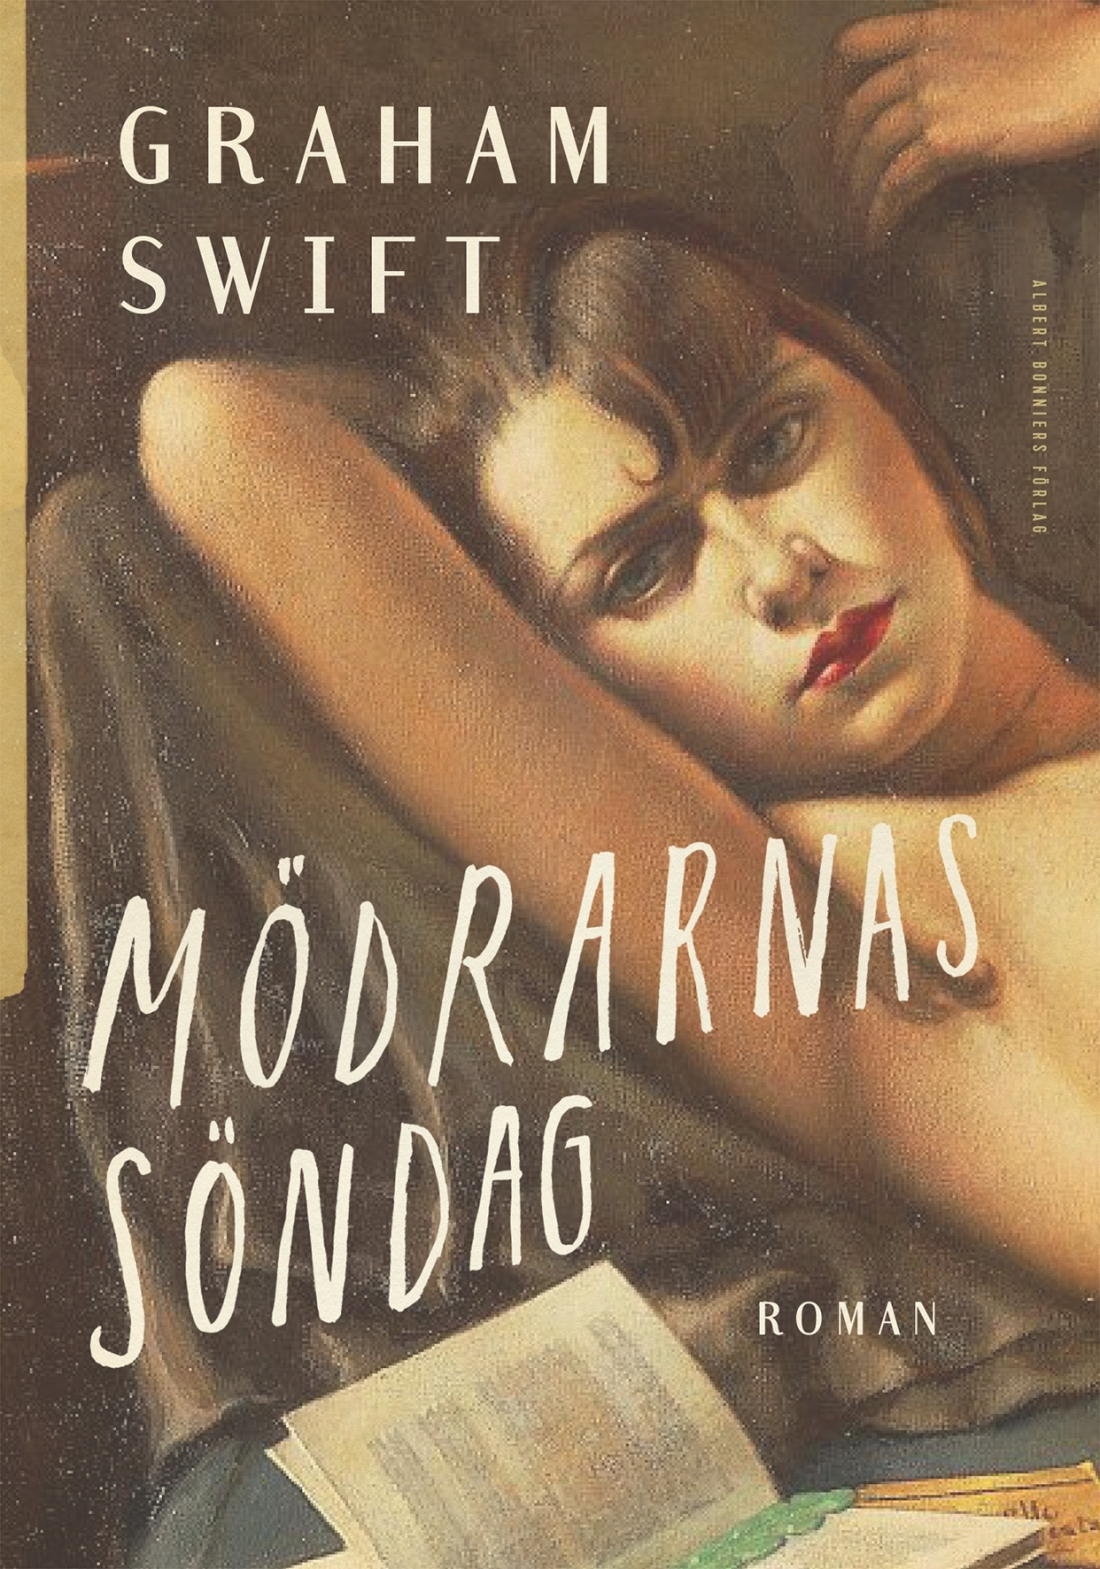 graham-swift-modrarnas-sondag